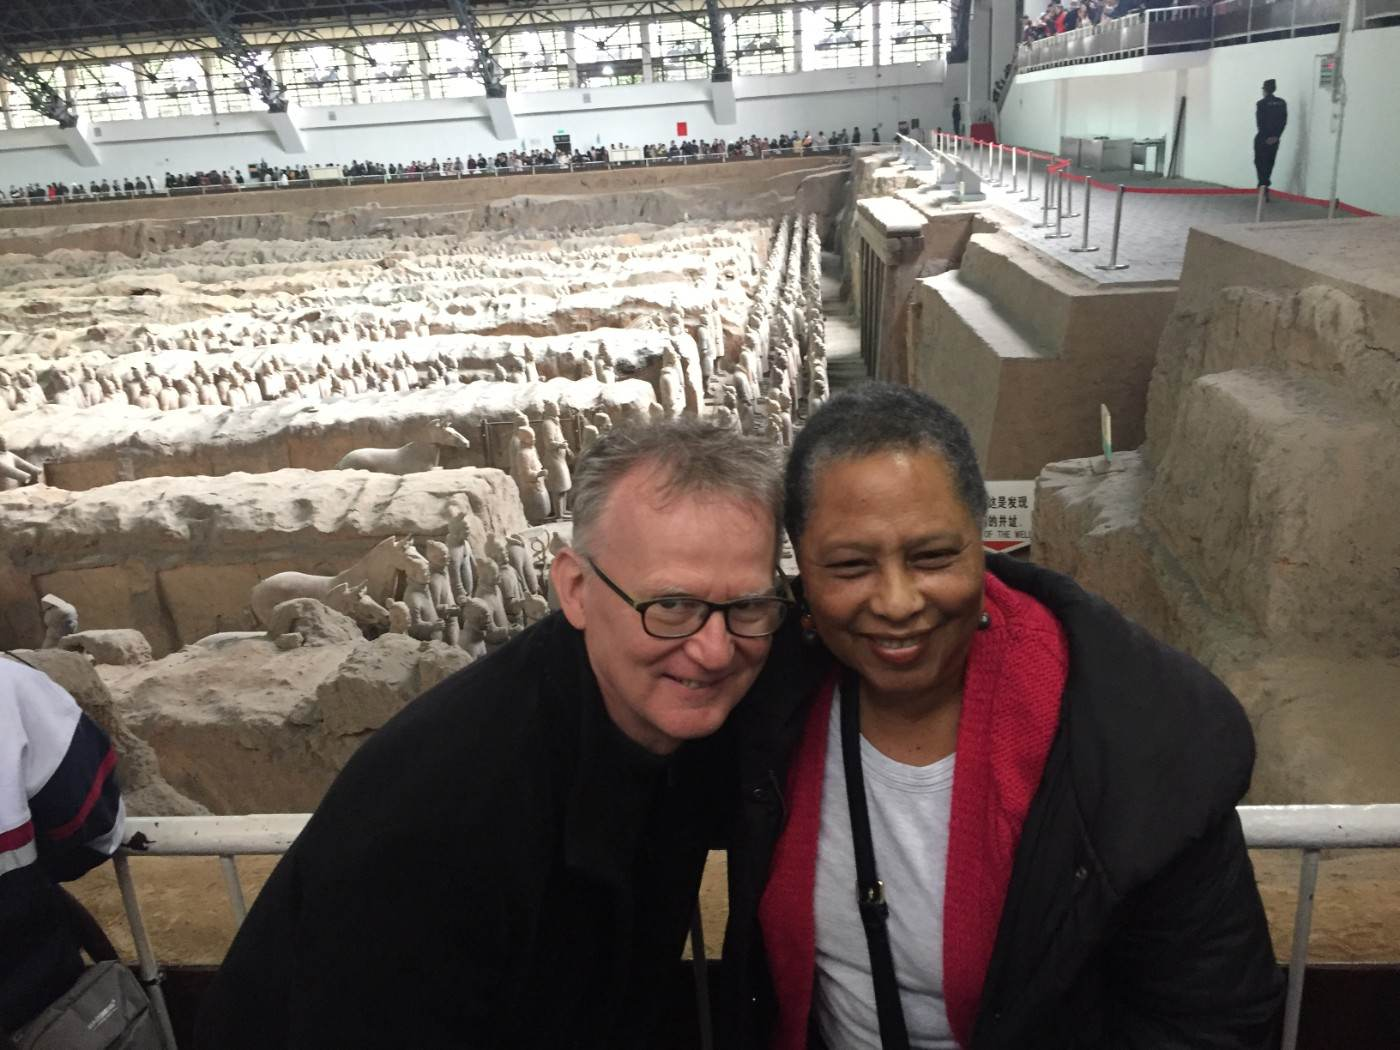 Eleanor and Tom visiting the Terracotta Army